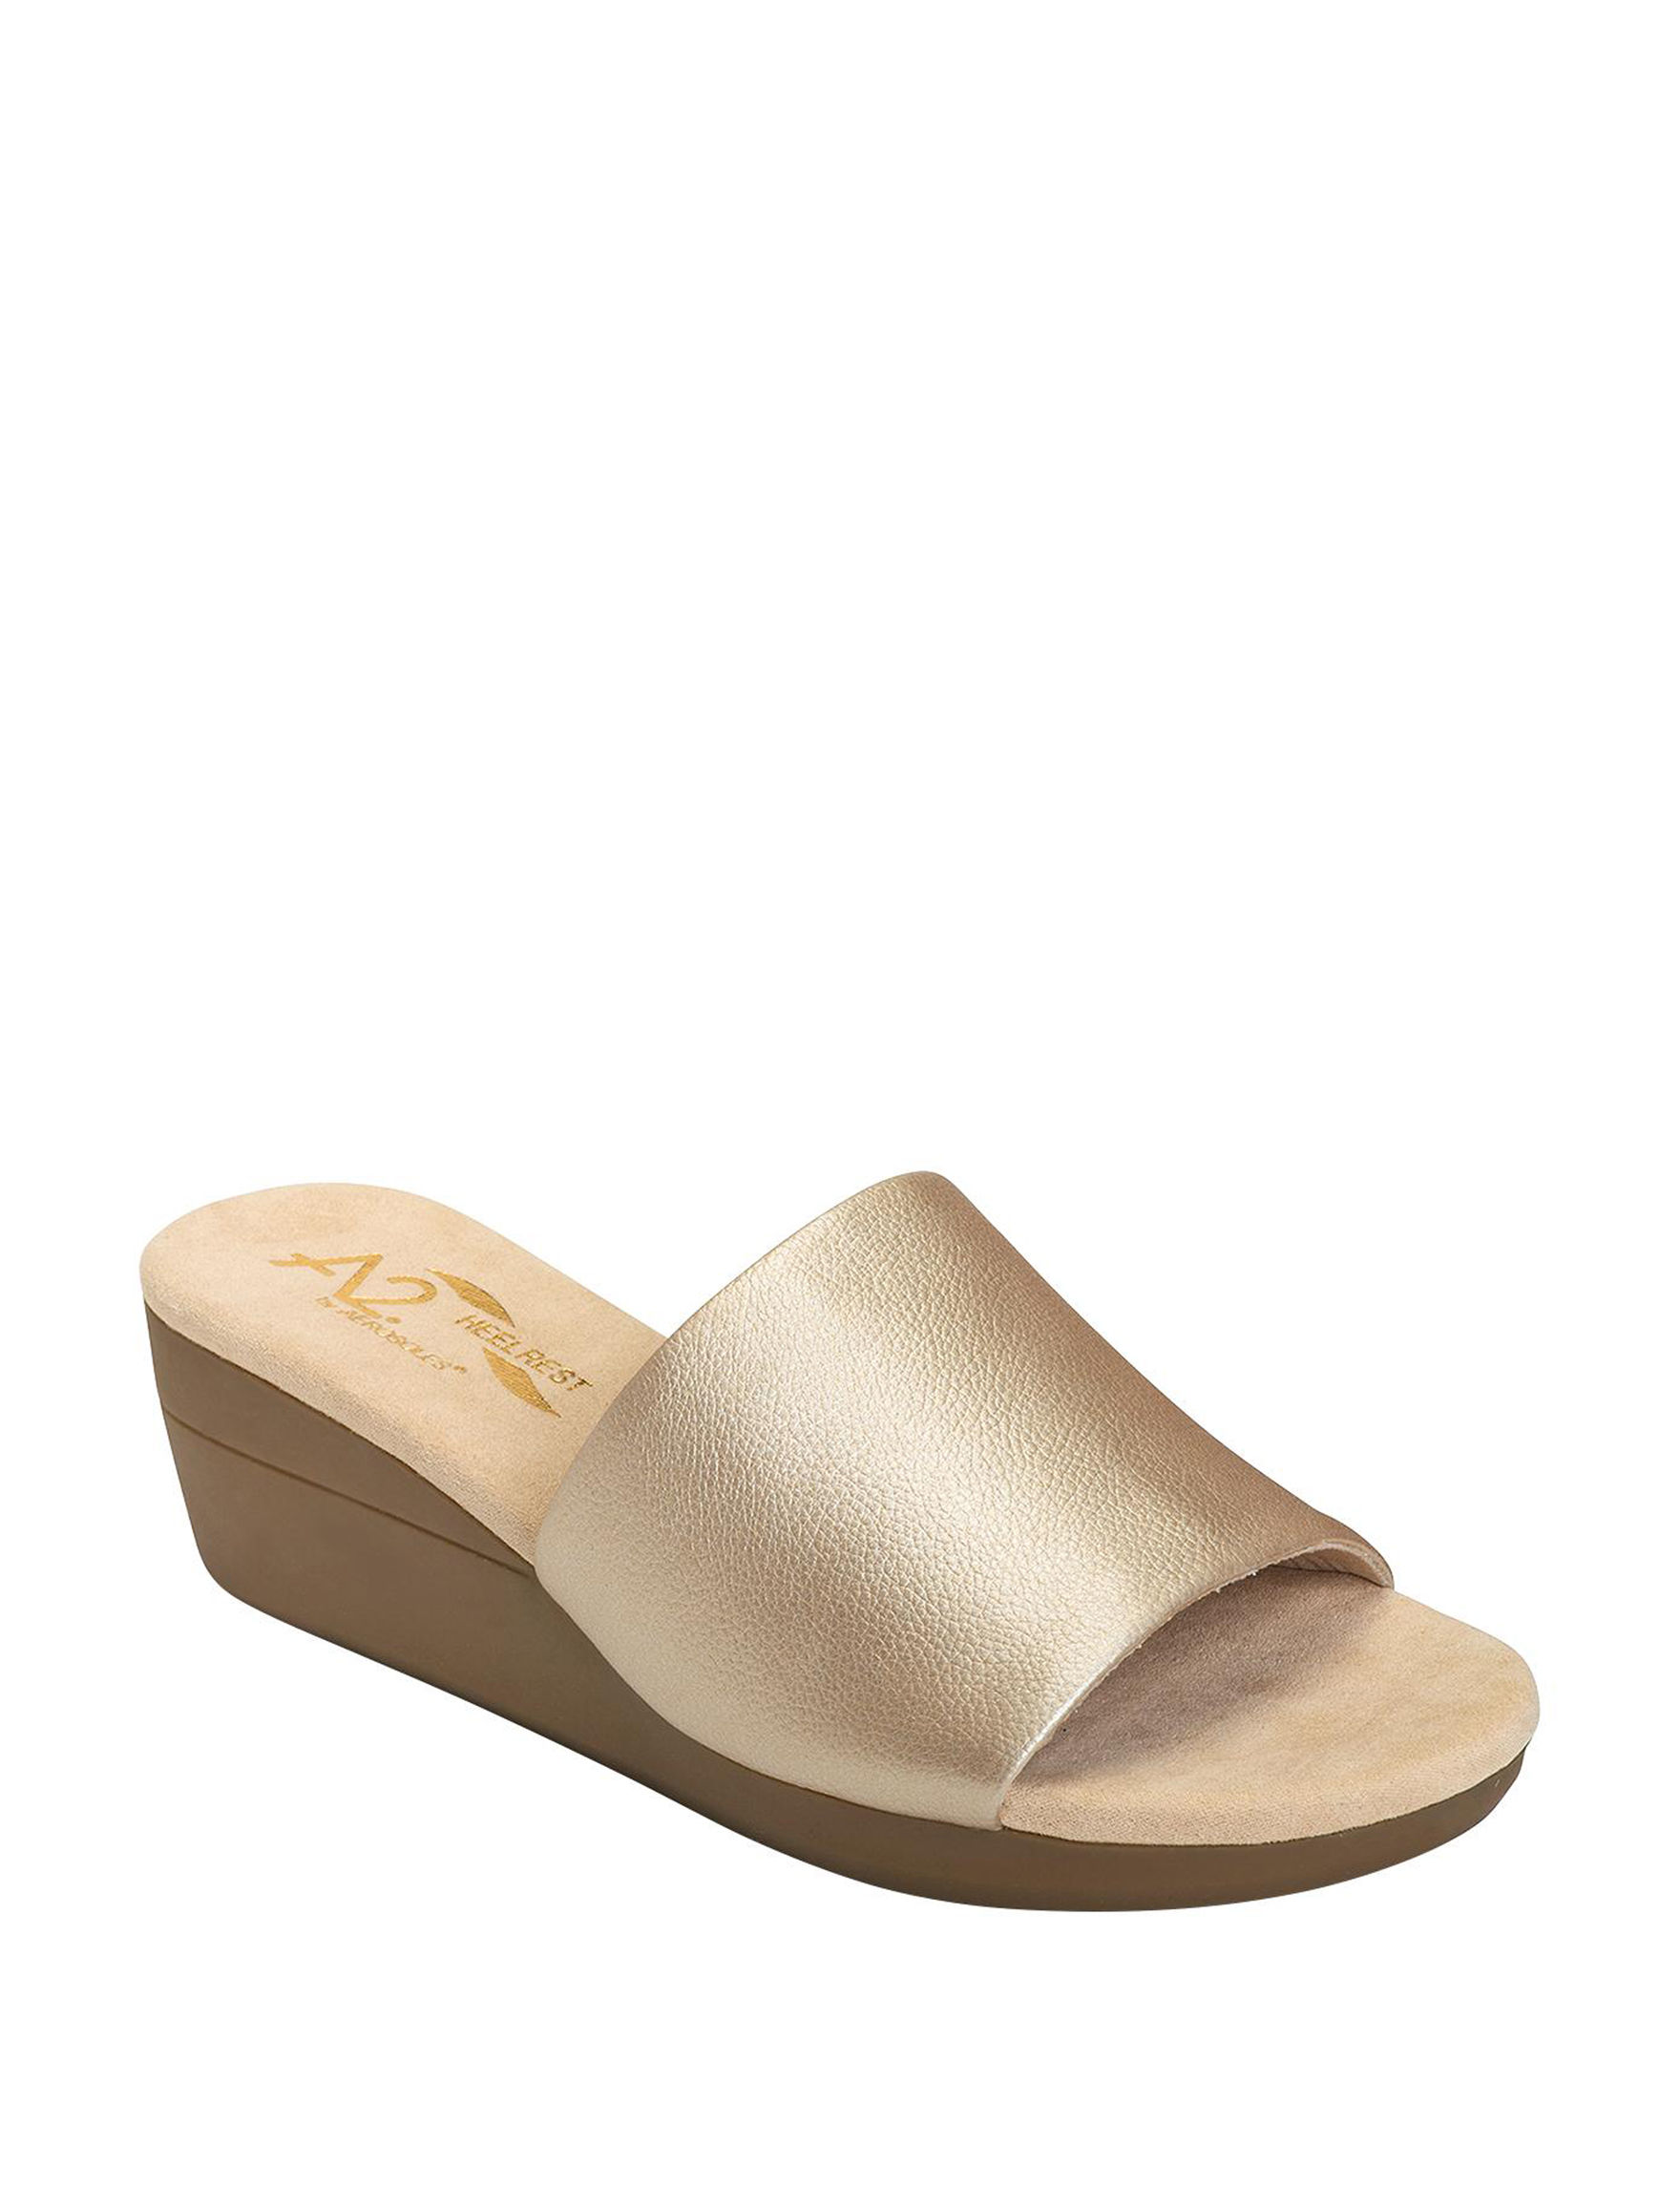 A2 by Aerosoles Gold Wedge Sandals